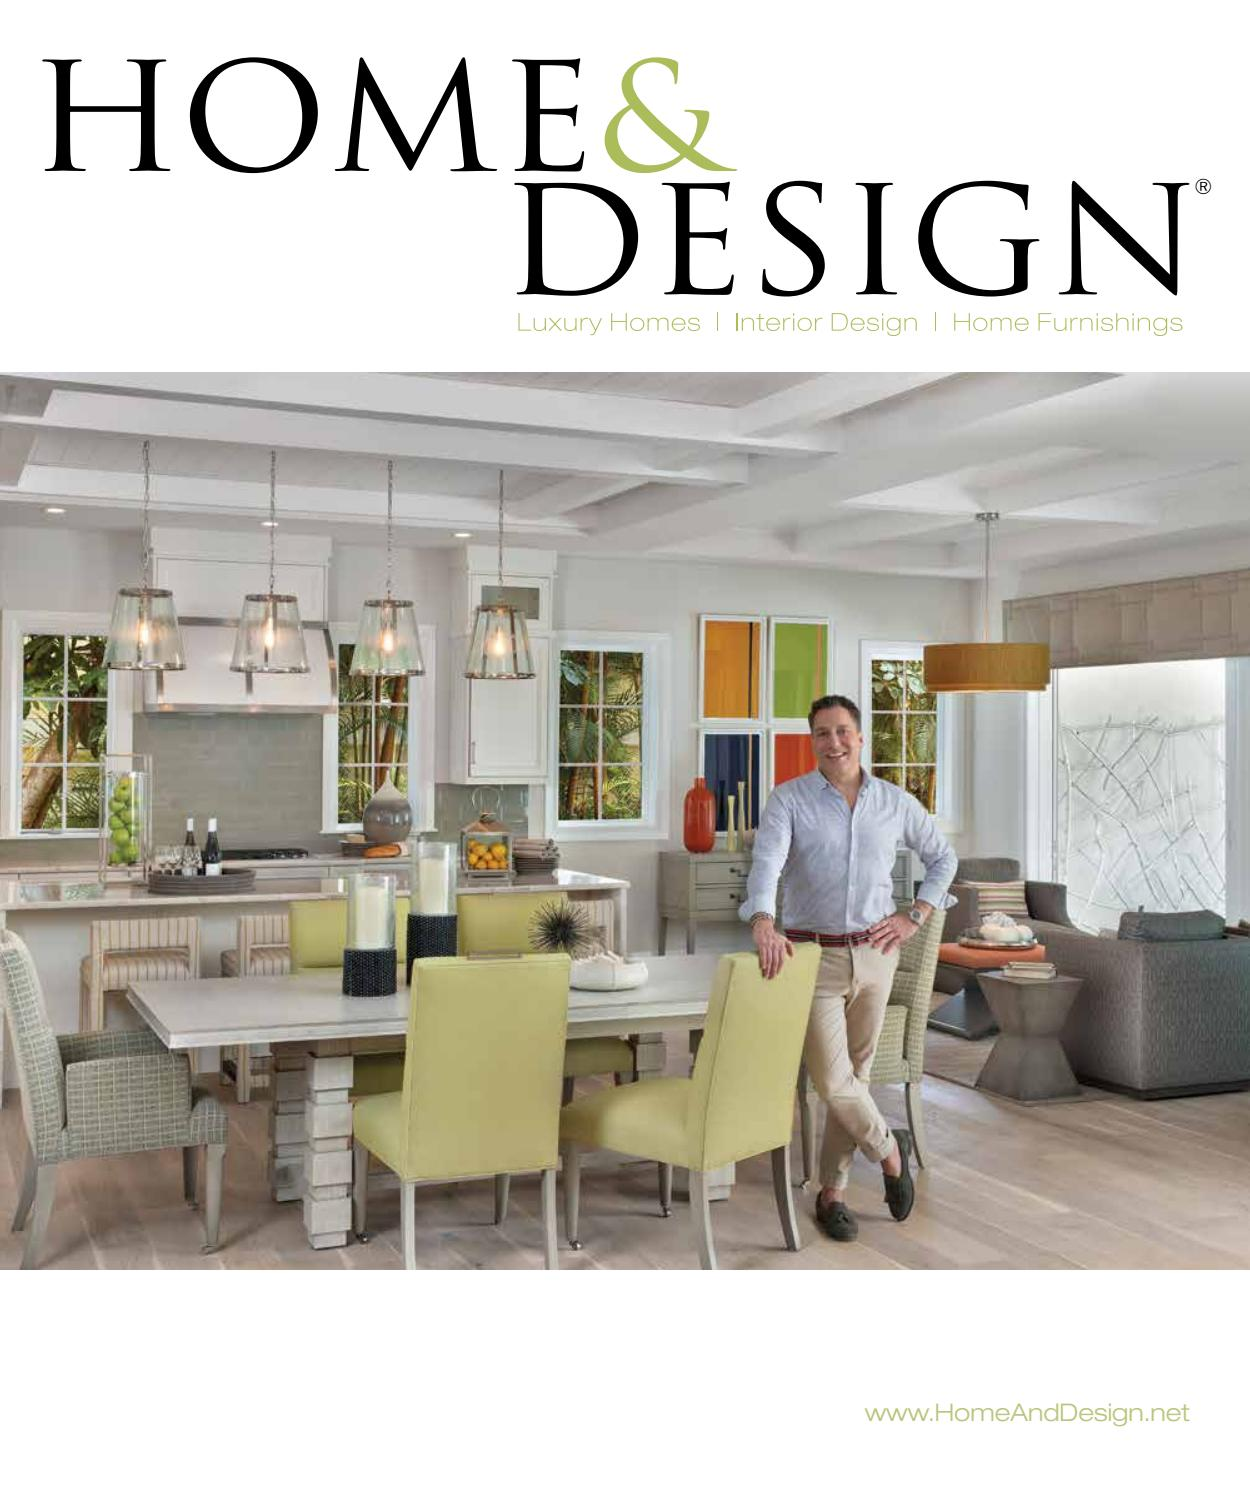 Home design magazine 2016 southwest florida edition by for Modern interior design magazines